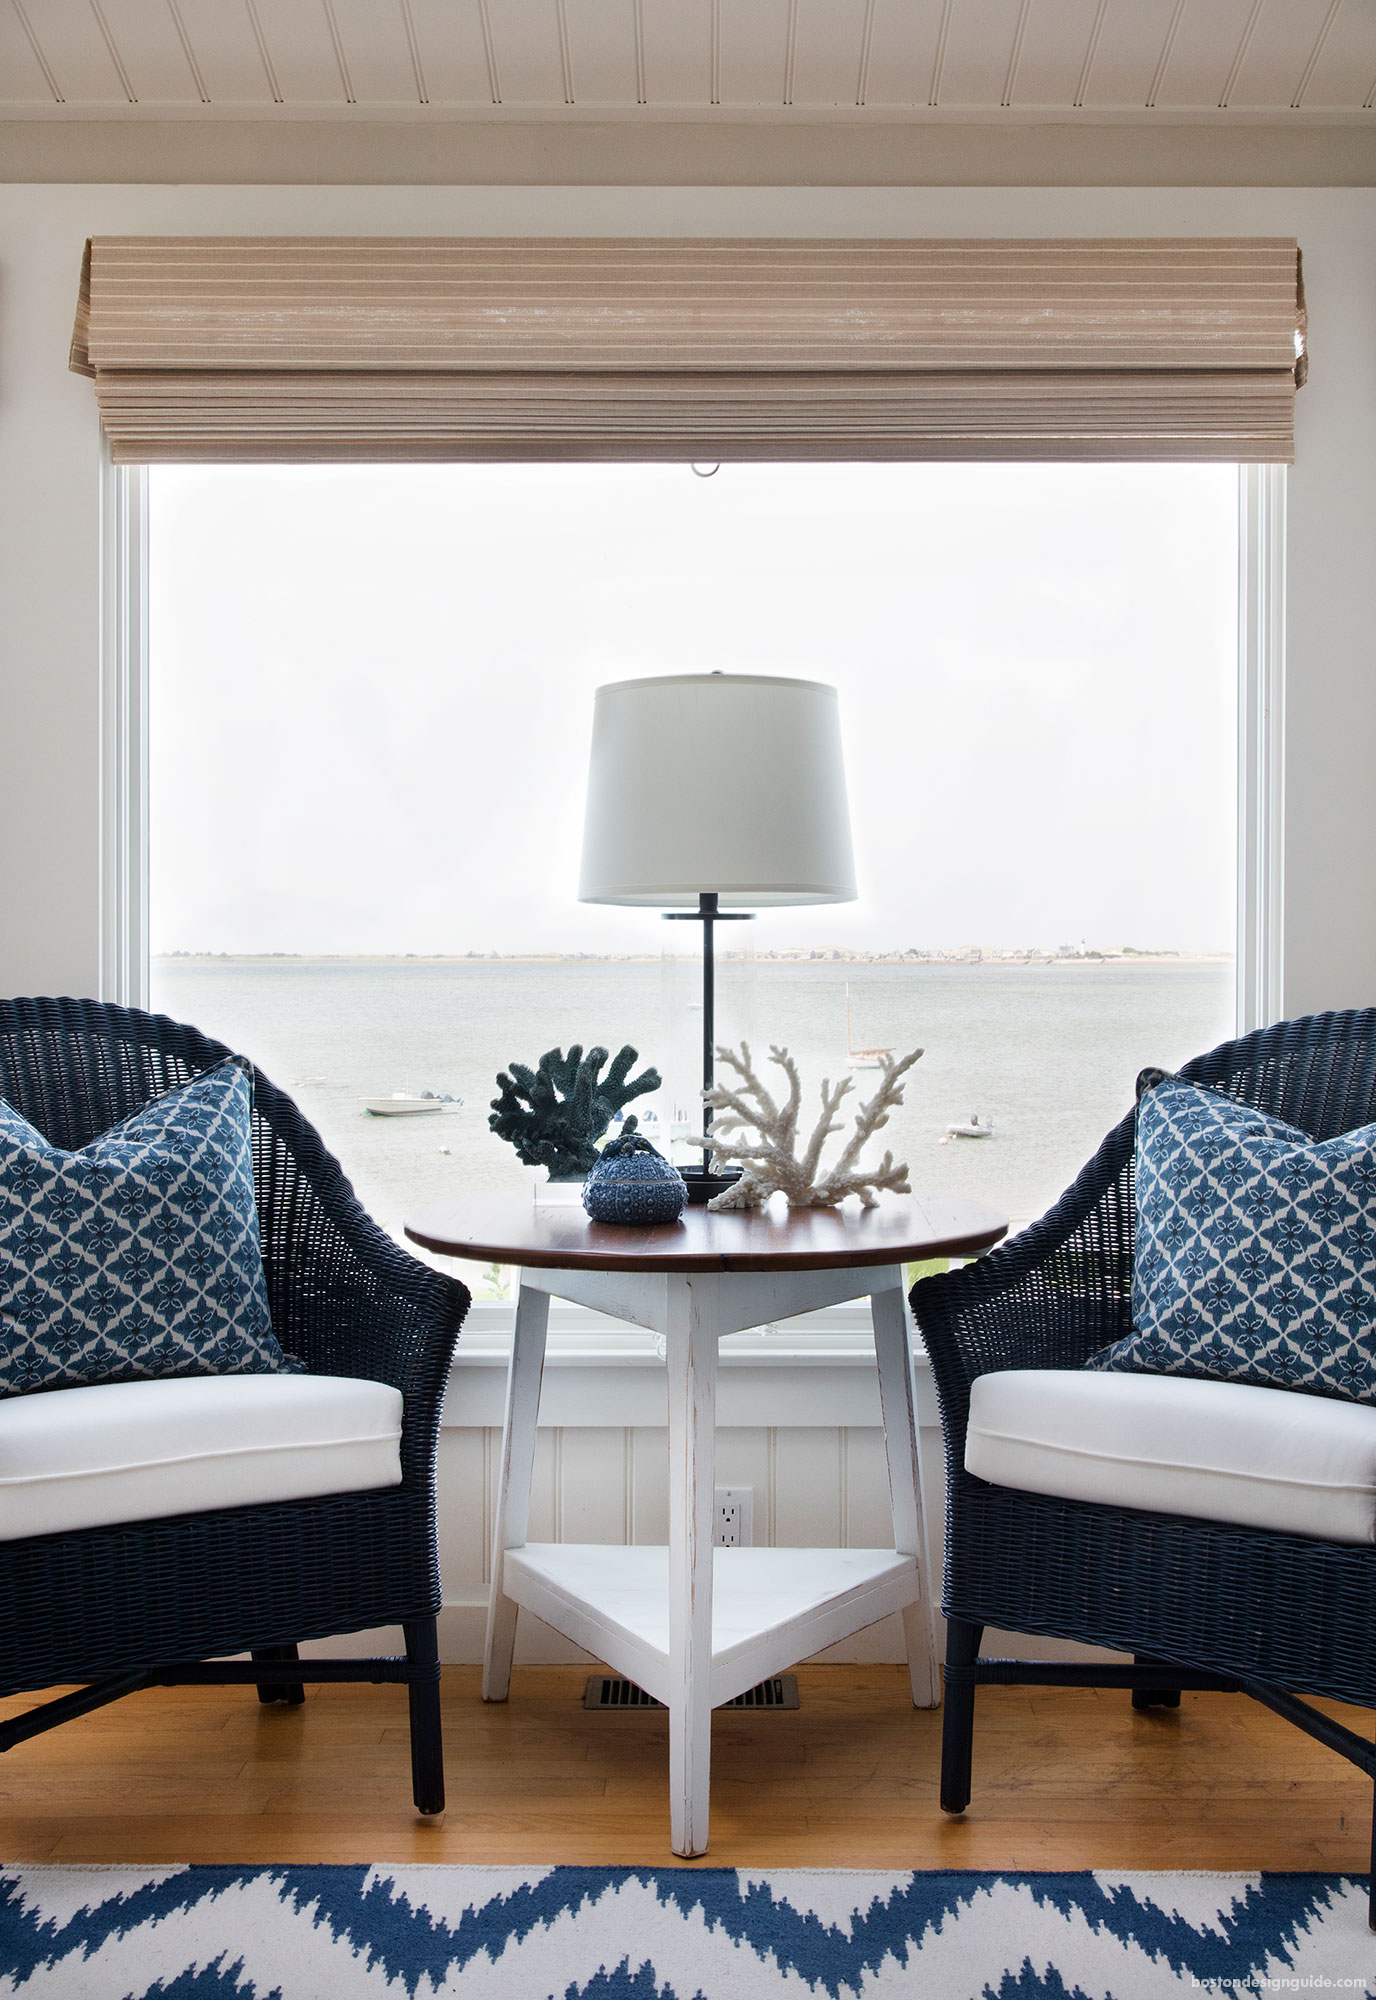 Interior design professionals on the Cape & Islands